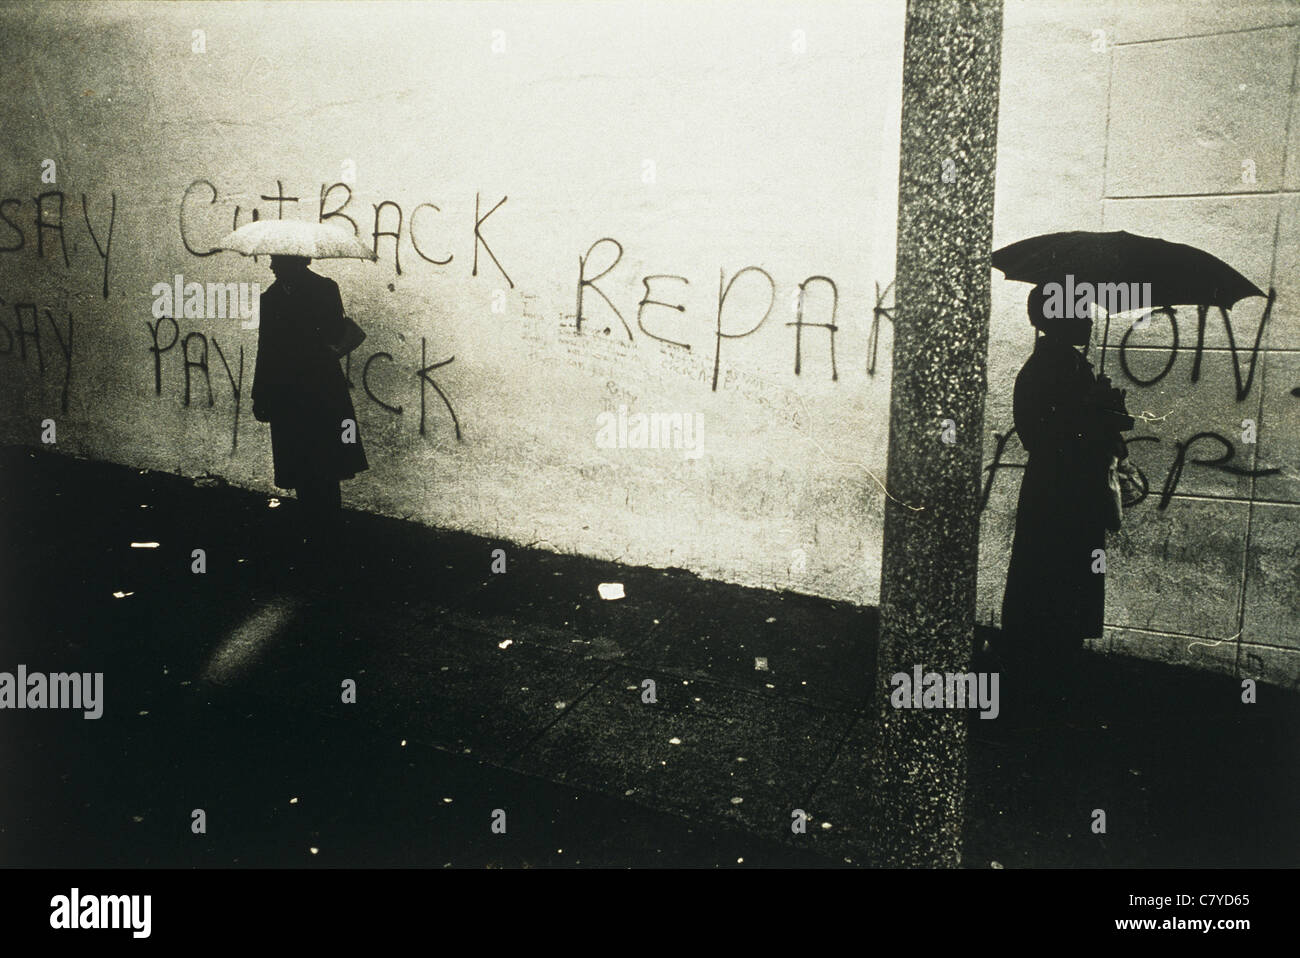 Two women walking in opposite directions with umbrellas against wall with writing - Stock Image